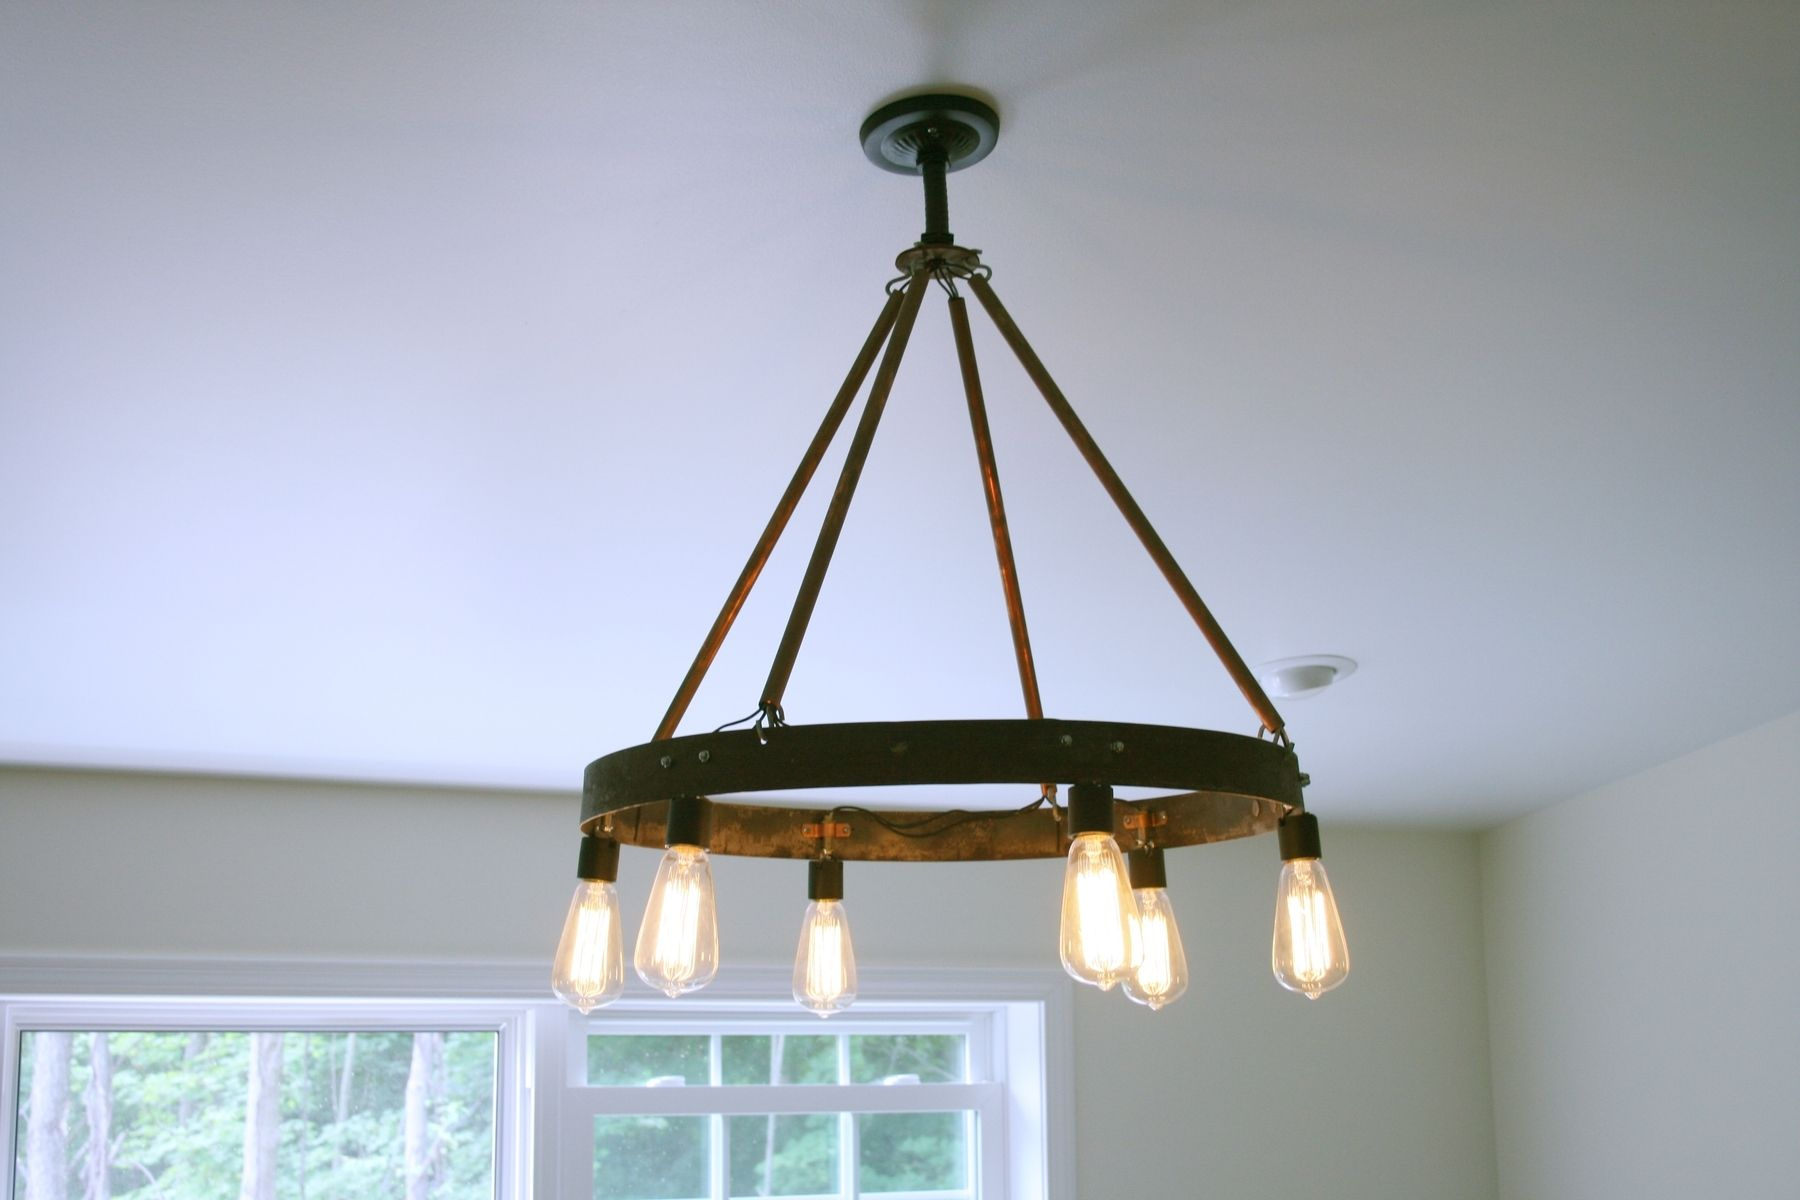 Buy A Custom Bourbon Barrel Ring Chandelier Featuring 6 Edison Bulb